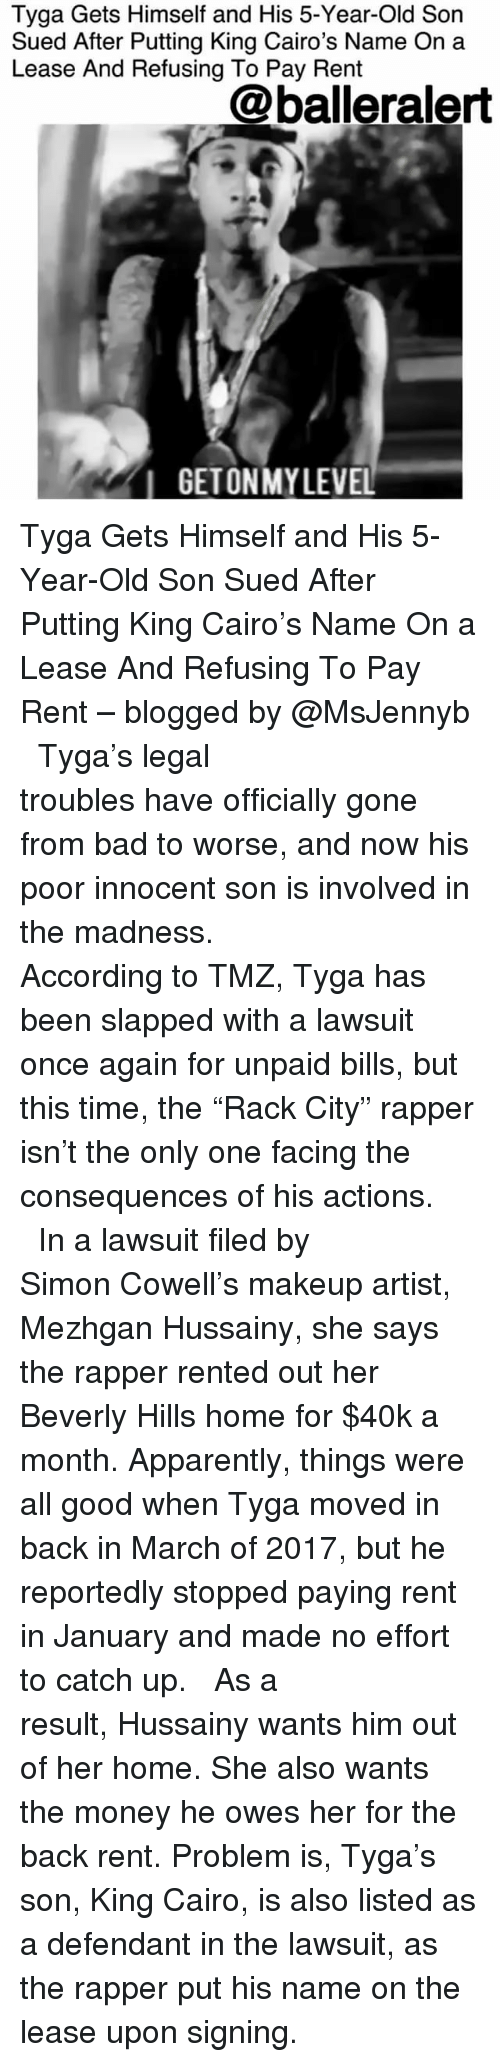 "Apparently, Bad, and Makeup: Tyga Gets Himself and His 5-Year-Old Son  Sued After Putting King Cairo's Name On a  Lease And Refusing To Pay Rent  @balleralert  IGETONMYLEVEL Tyga Gets Himself and His 5-Year-Old Son Sued After Putting King Cairo's Name On a Lease And Refusing To Pay Rent – blogged by @MsJennyb ⠀⠀⠀⠀⠀⠀⠀⠀⠀ ⠀⠀⠀⠀⠀⠀⠀⠀⠀ Tyga's legal troubles have officially gone from bad to worse, and now his poor innocent son is involved in the madness. ⠀⠀⠀⠀⠀⠀⠀⠀⠀ ⠀⠀⠀⠀⠀⠀⠀⠀⠀ According to TMZ, Tyga has been slapped with a lawsuit once again for unpaid bills, but this time, the ""Rack City"" rapper isn't the only one facing the consequences of his actions. ⠀⠀⠀⠀⠀⠀⠀⠀⠀ ⠀⠀⠀⠀⠀⠀⠀⠀⠀ In a lawsuit filed by Simon Cowell's makeup artist, Mezhgan Hussainy, she says the rapper rented out her Beverly Hills home for $40k a month. Apparently, things were all good when Tyga moved in back in March of 2017, but he reportedly stopped paying rent in January and made no effort to catch up. ⠀⠀⠀⠀⠀⠀⠀⠀⠀ ⠀⠀⠀⠀⠀⠀⠀⠀⠀ As a result, Hussainy wants him out of her home. She also wants the money he owes her for the back rent. Problem is, Tyga's son, King Cairo, is also listed as a defendant in the lawsuit, as the rapper put his name on the lease upon signing."